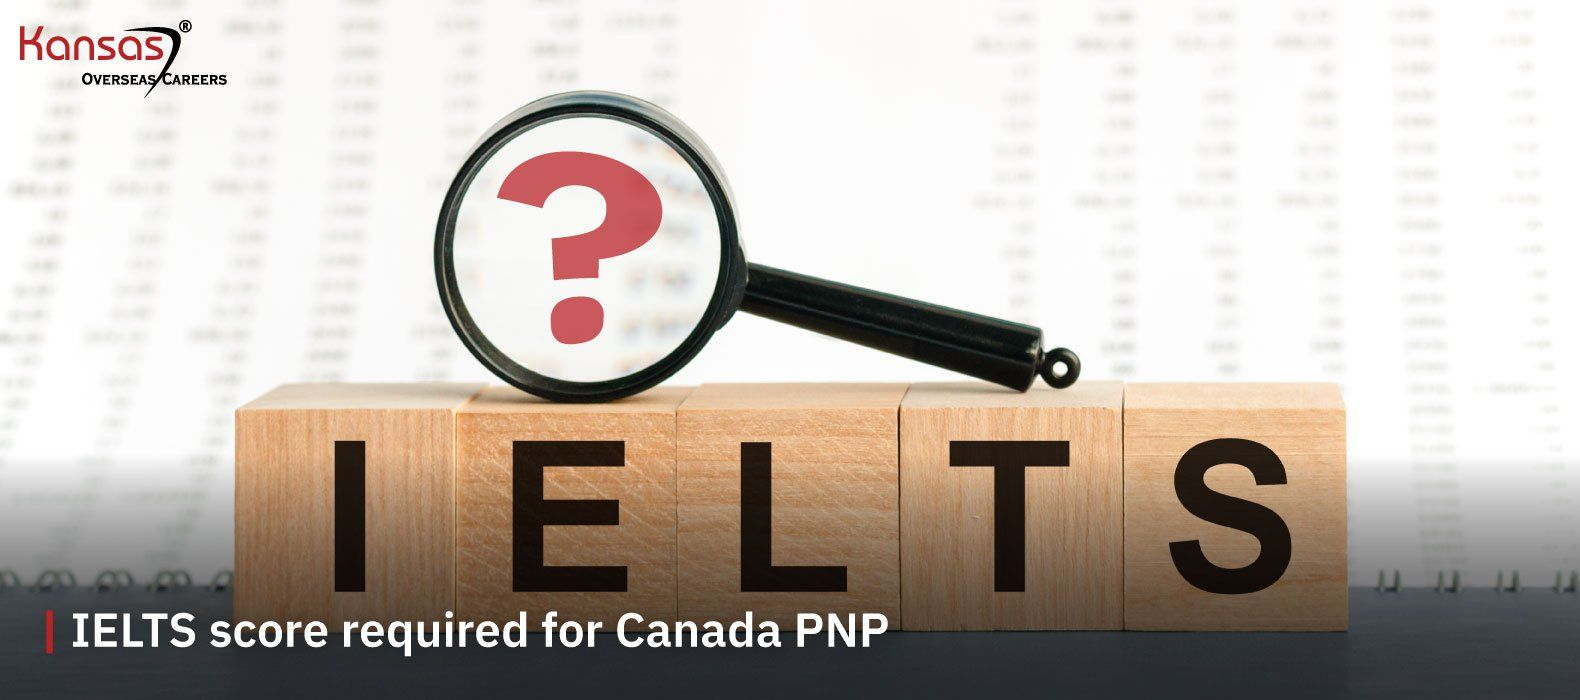 What-is-the-minimum-IELTS-score-required-for-Canada-PNP-2021